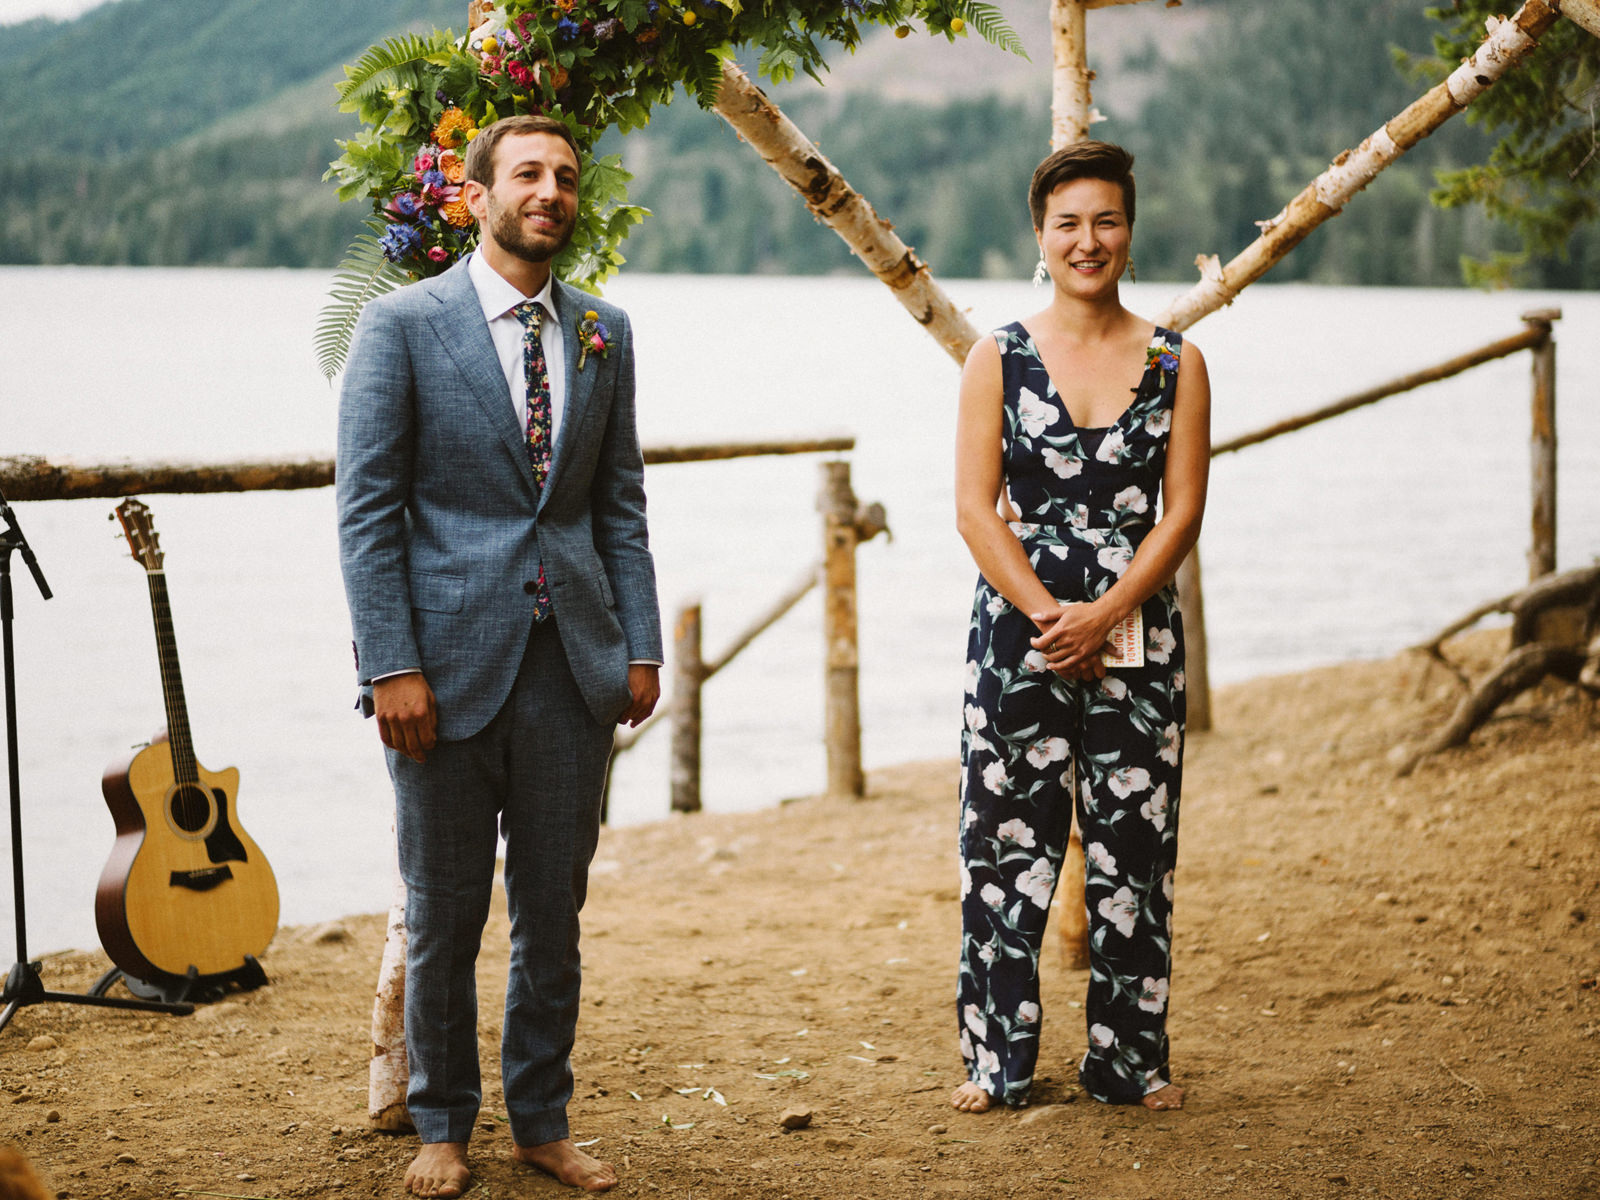 zanny-noah-050 LAKE CUSHMAN WEDDING